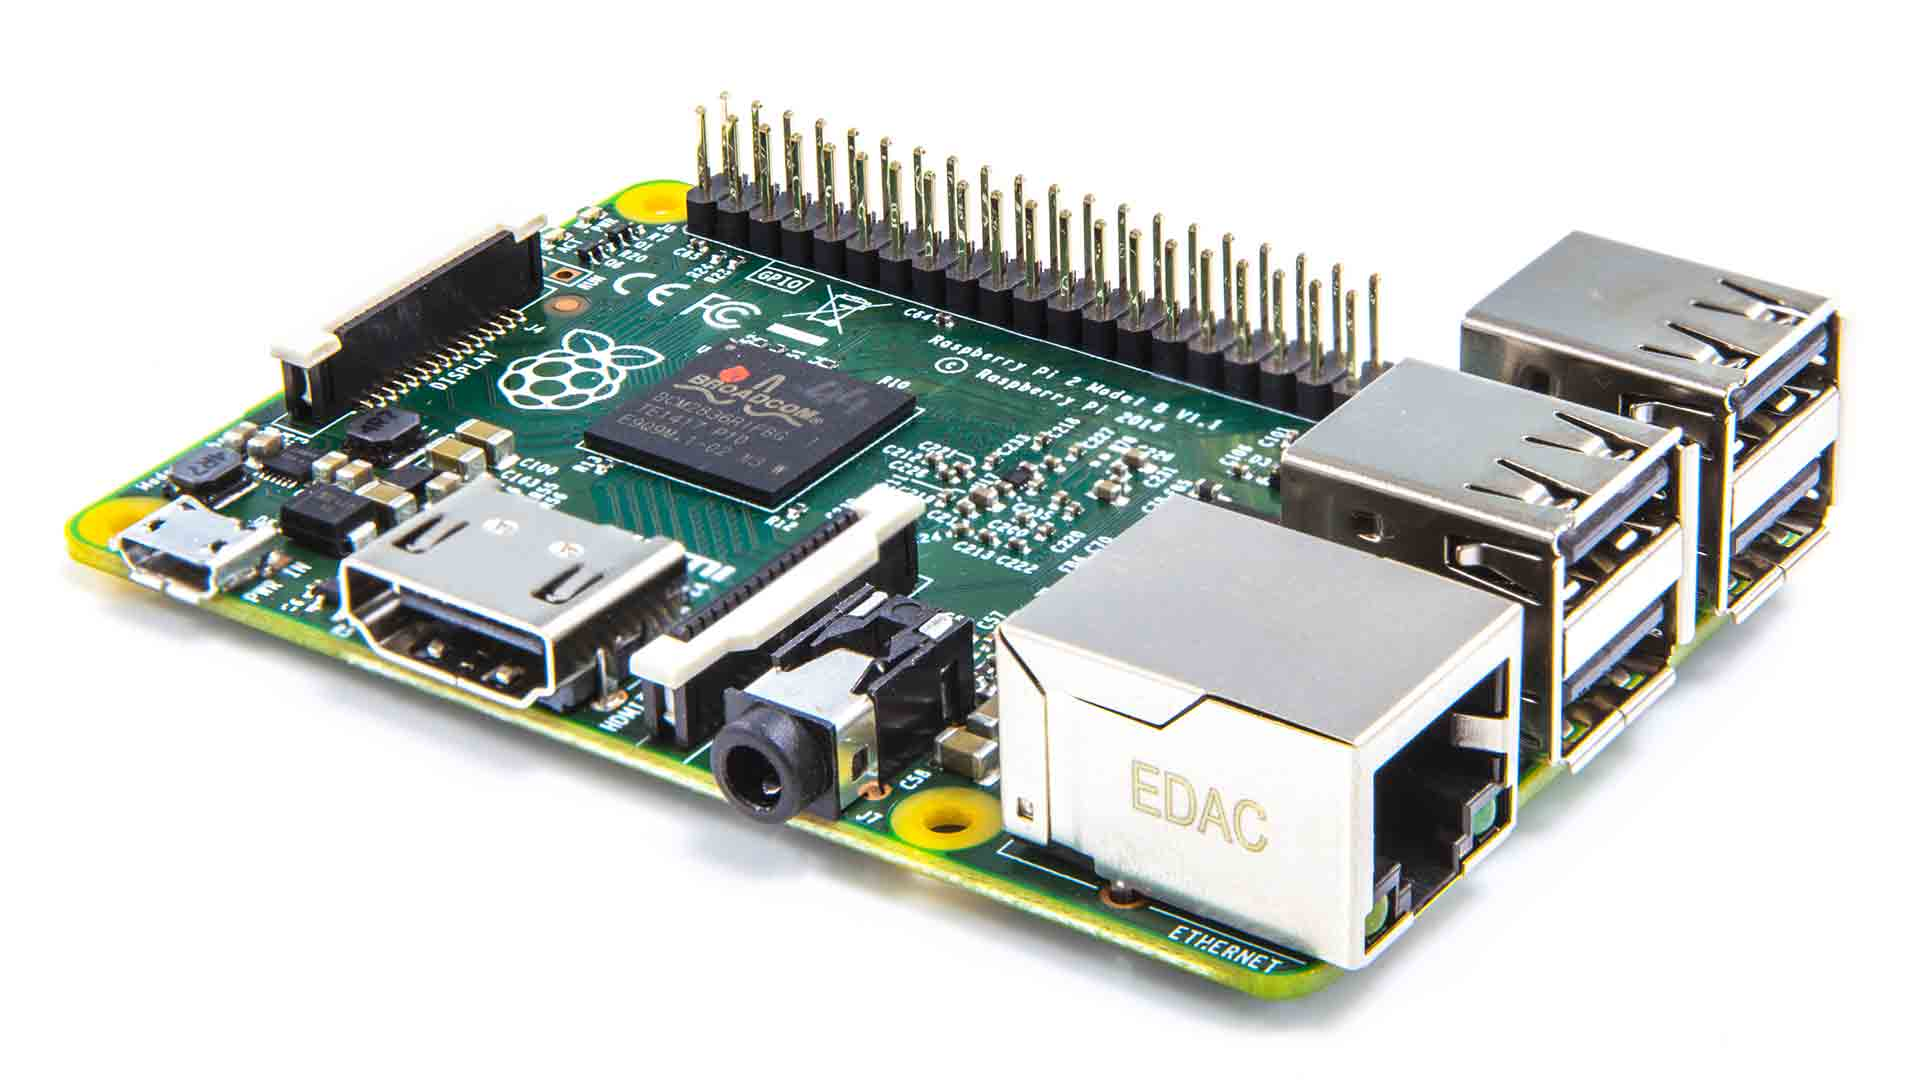 Raspberry Pi 2: A Tiny PC That Packs a Punch